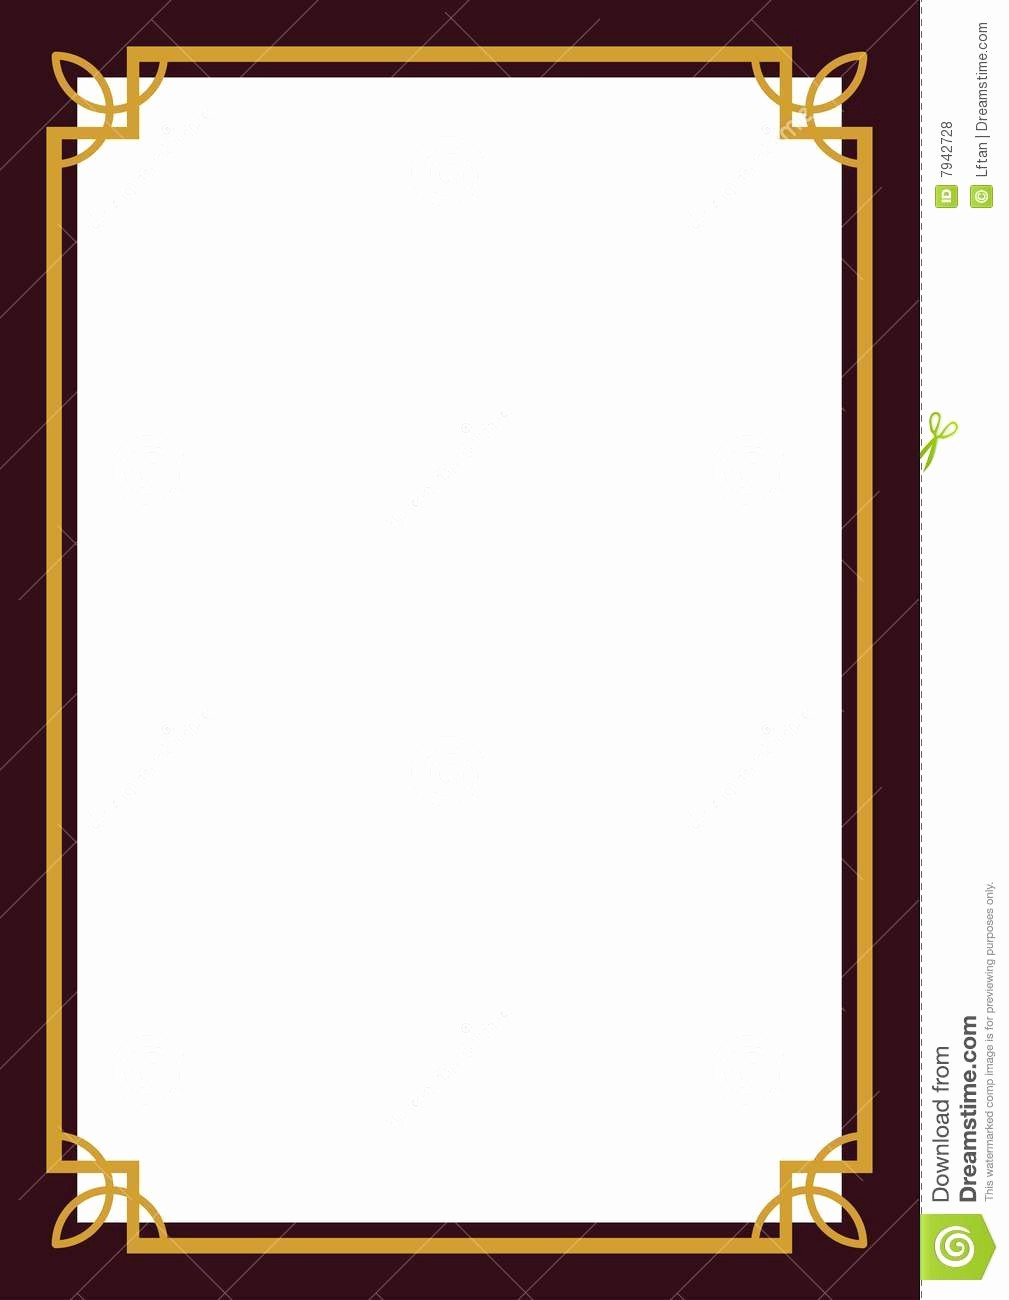 Certificate Border Design Free Download Best Of Certificate Borders Free Download 2018 Free Certificate